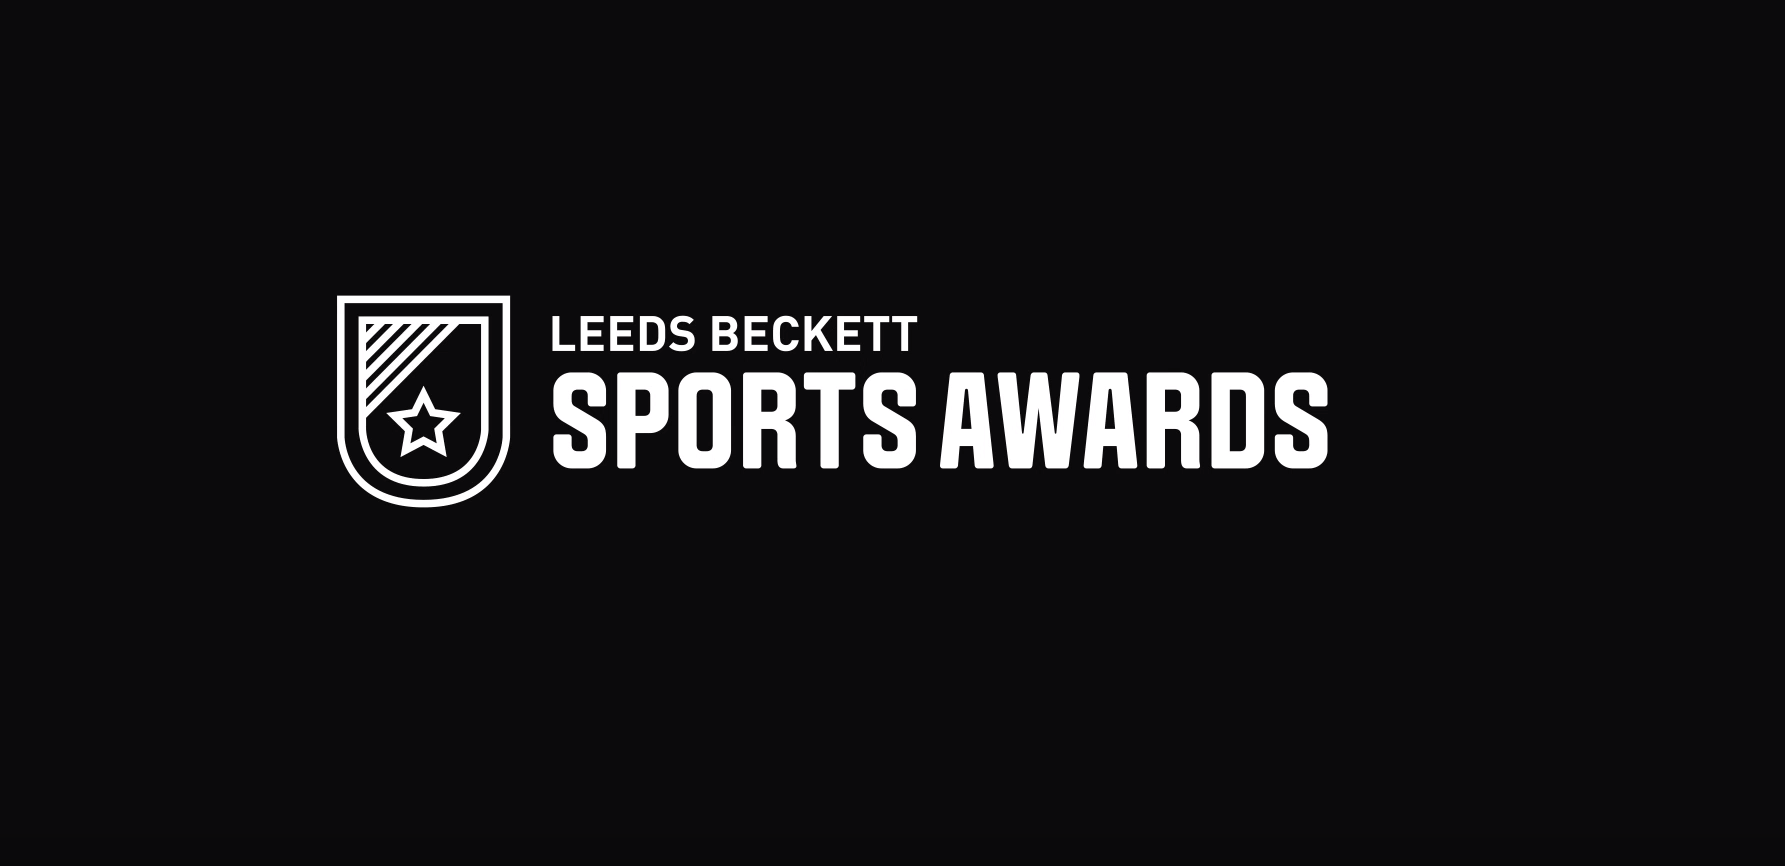 2019 Leeds Beckett Sports Awards winners